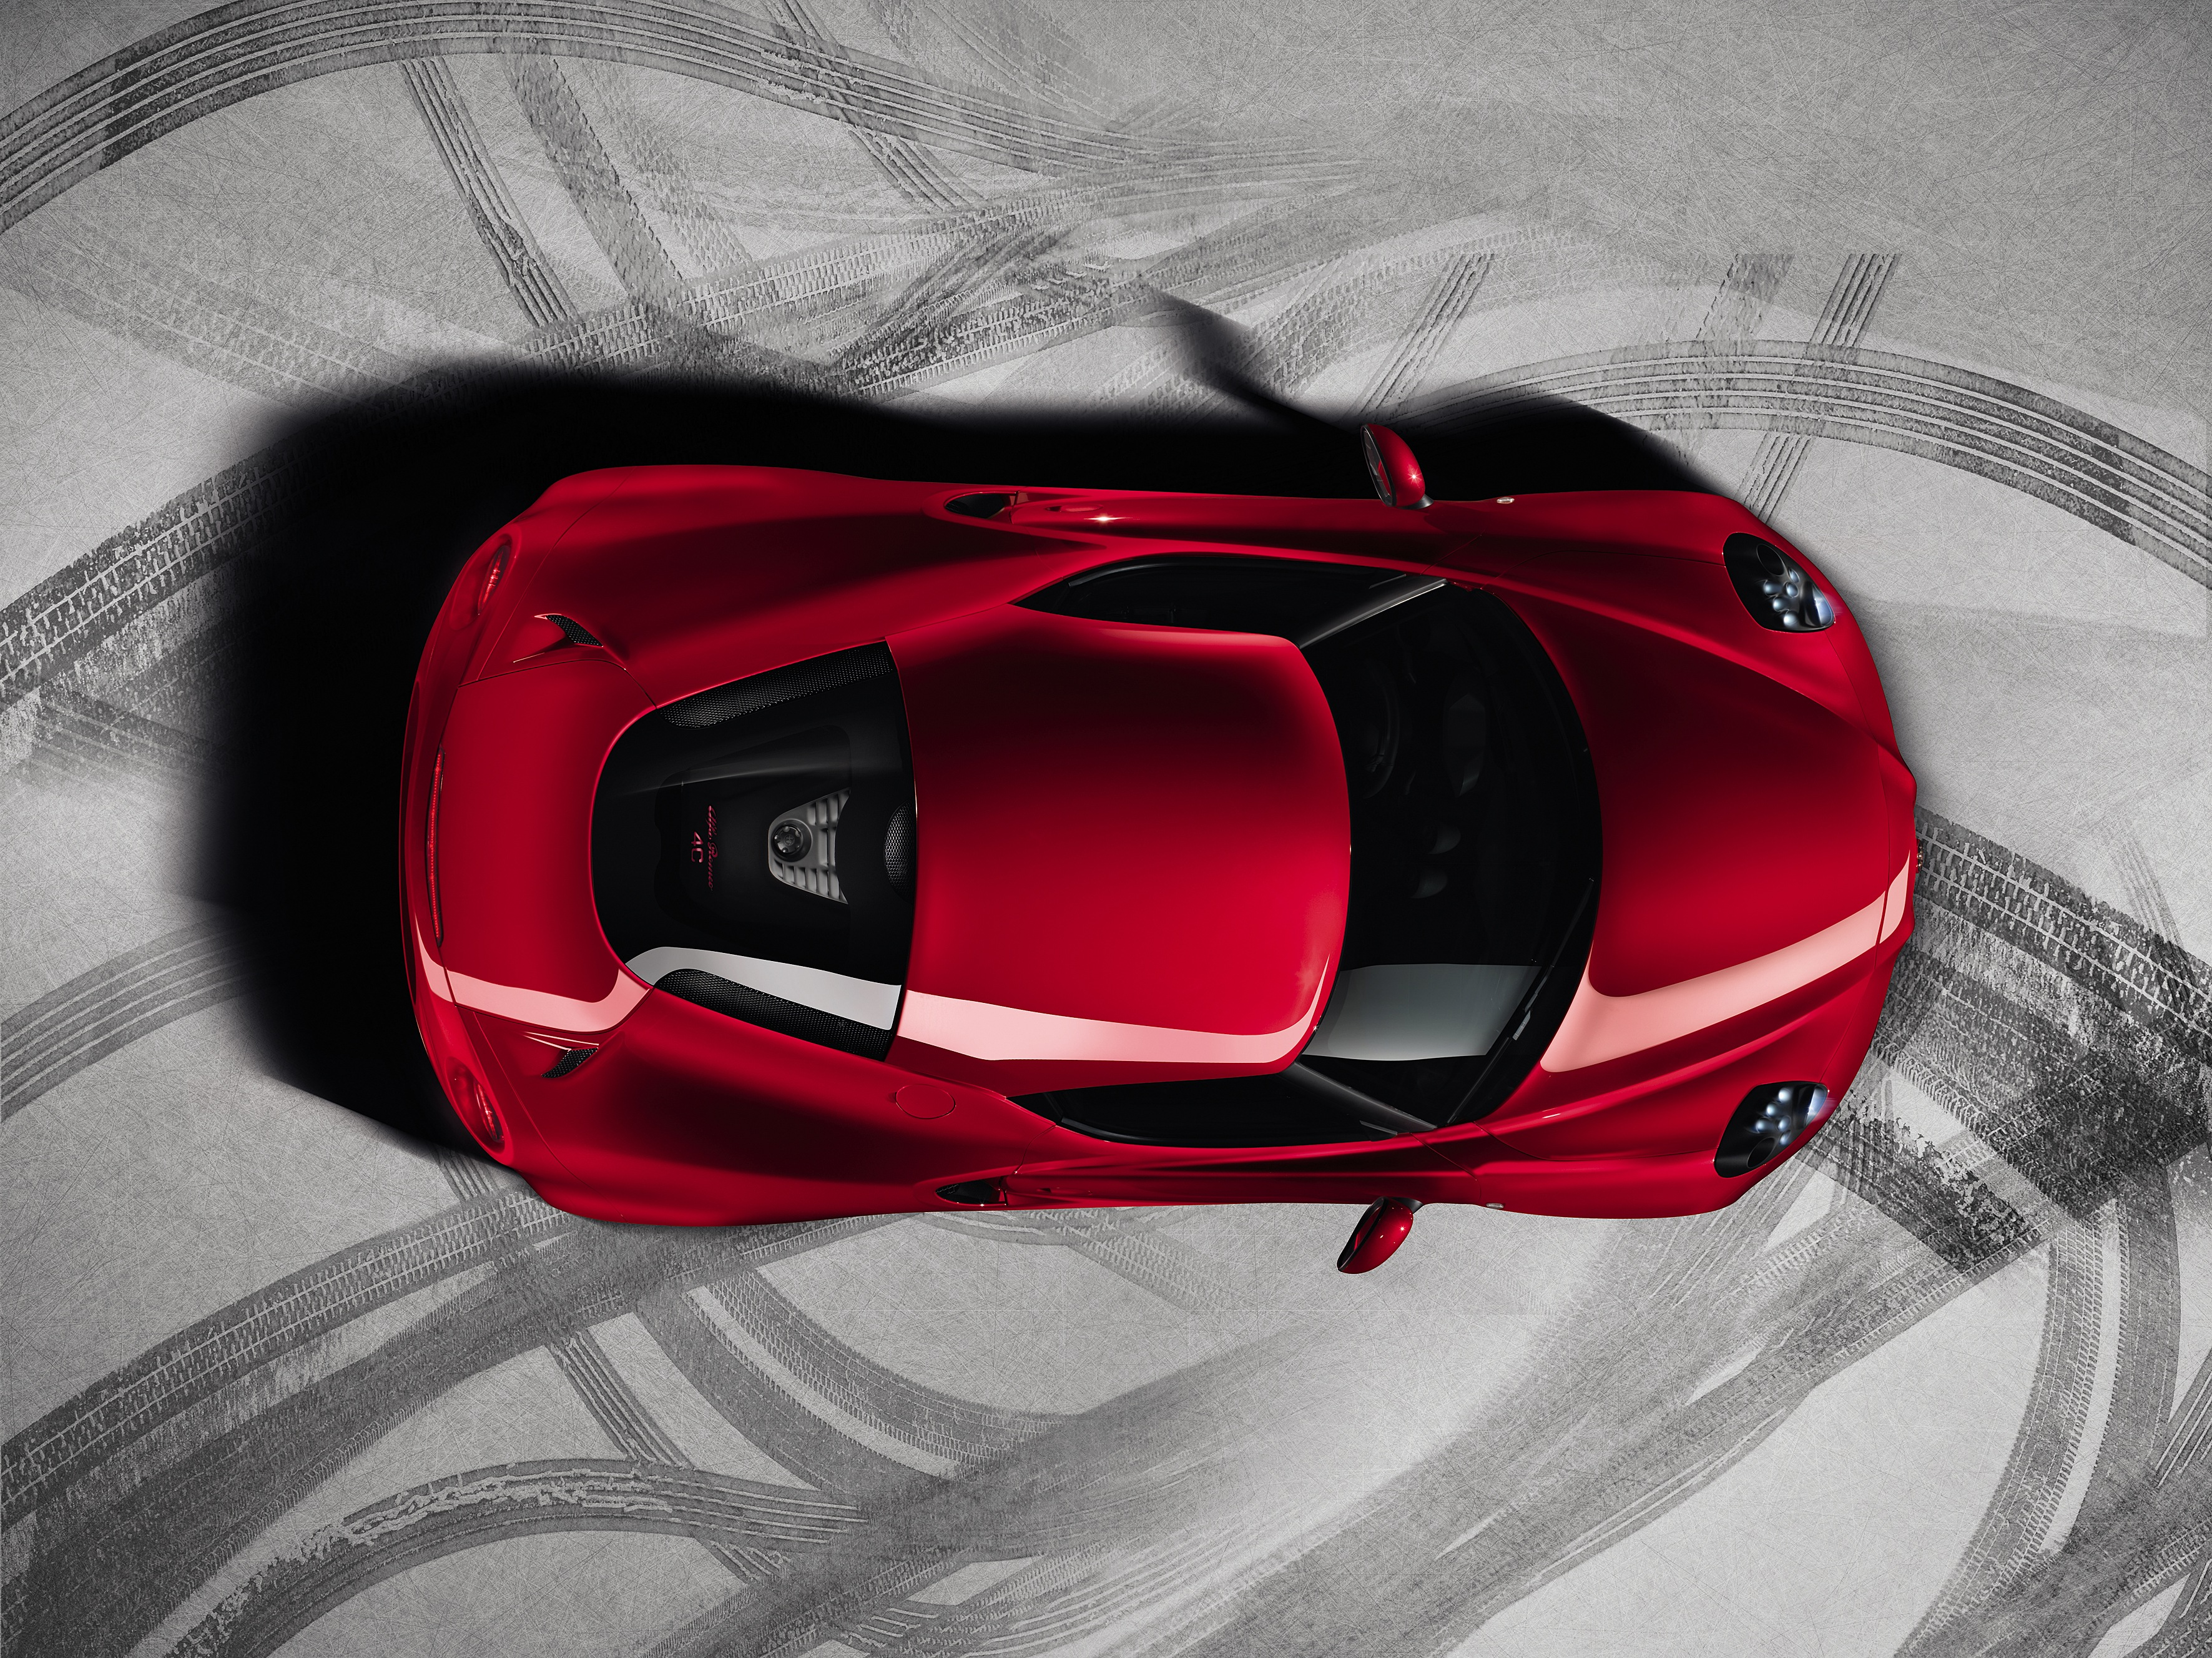 Alfa Romeo 4C 2013 Production Model High Resolution Carbon top view showing small size